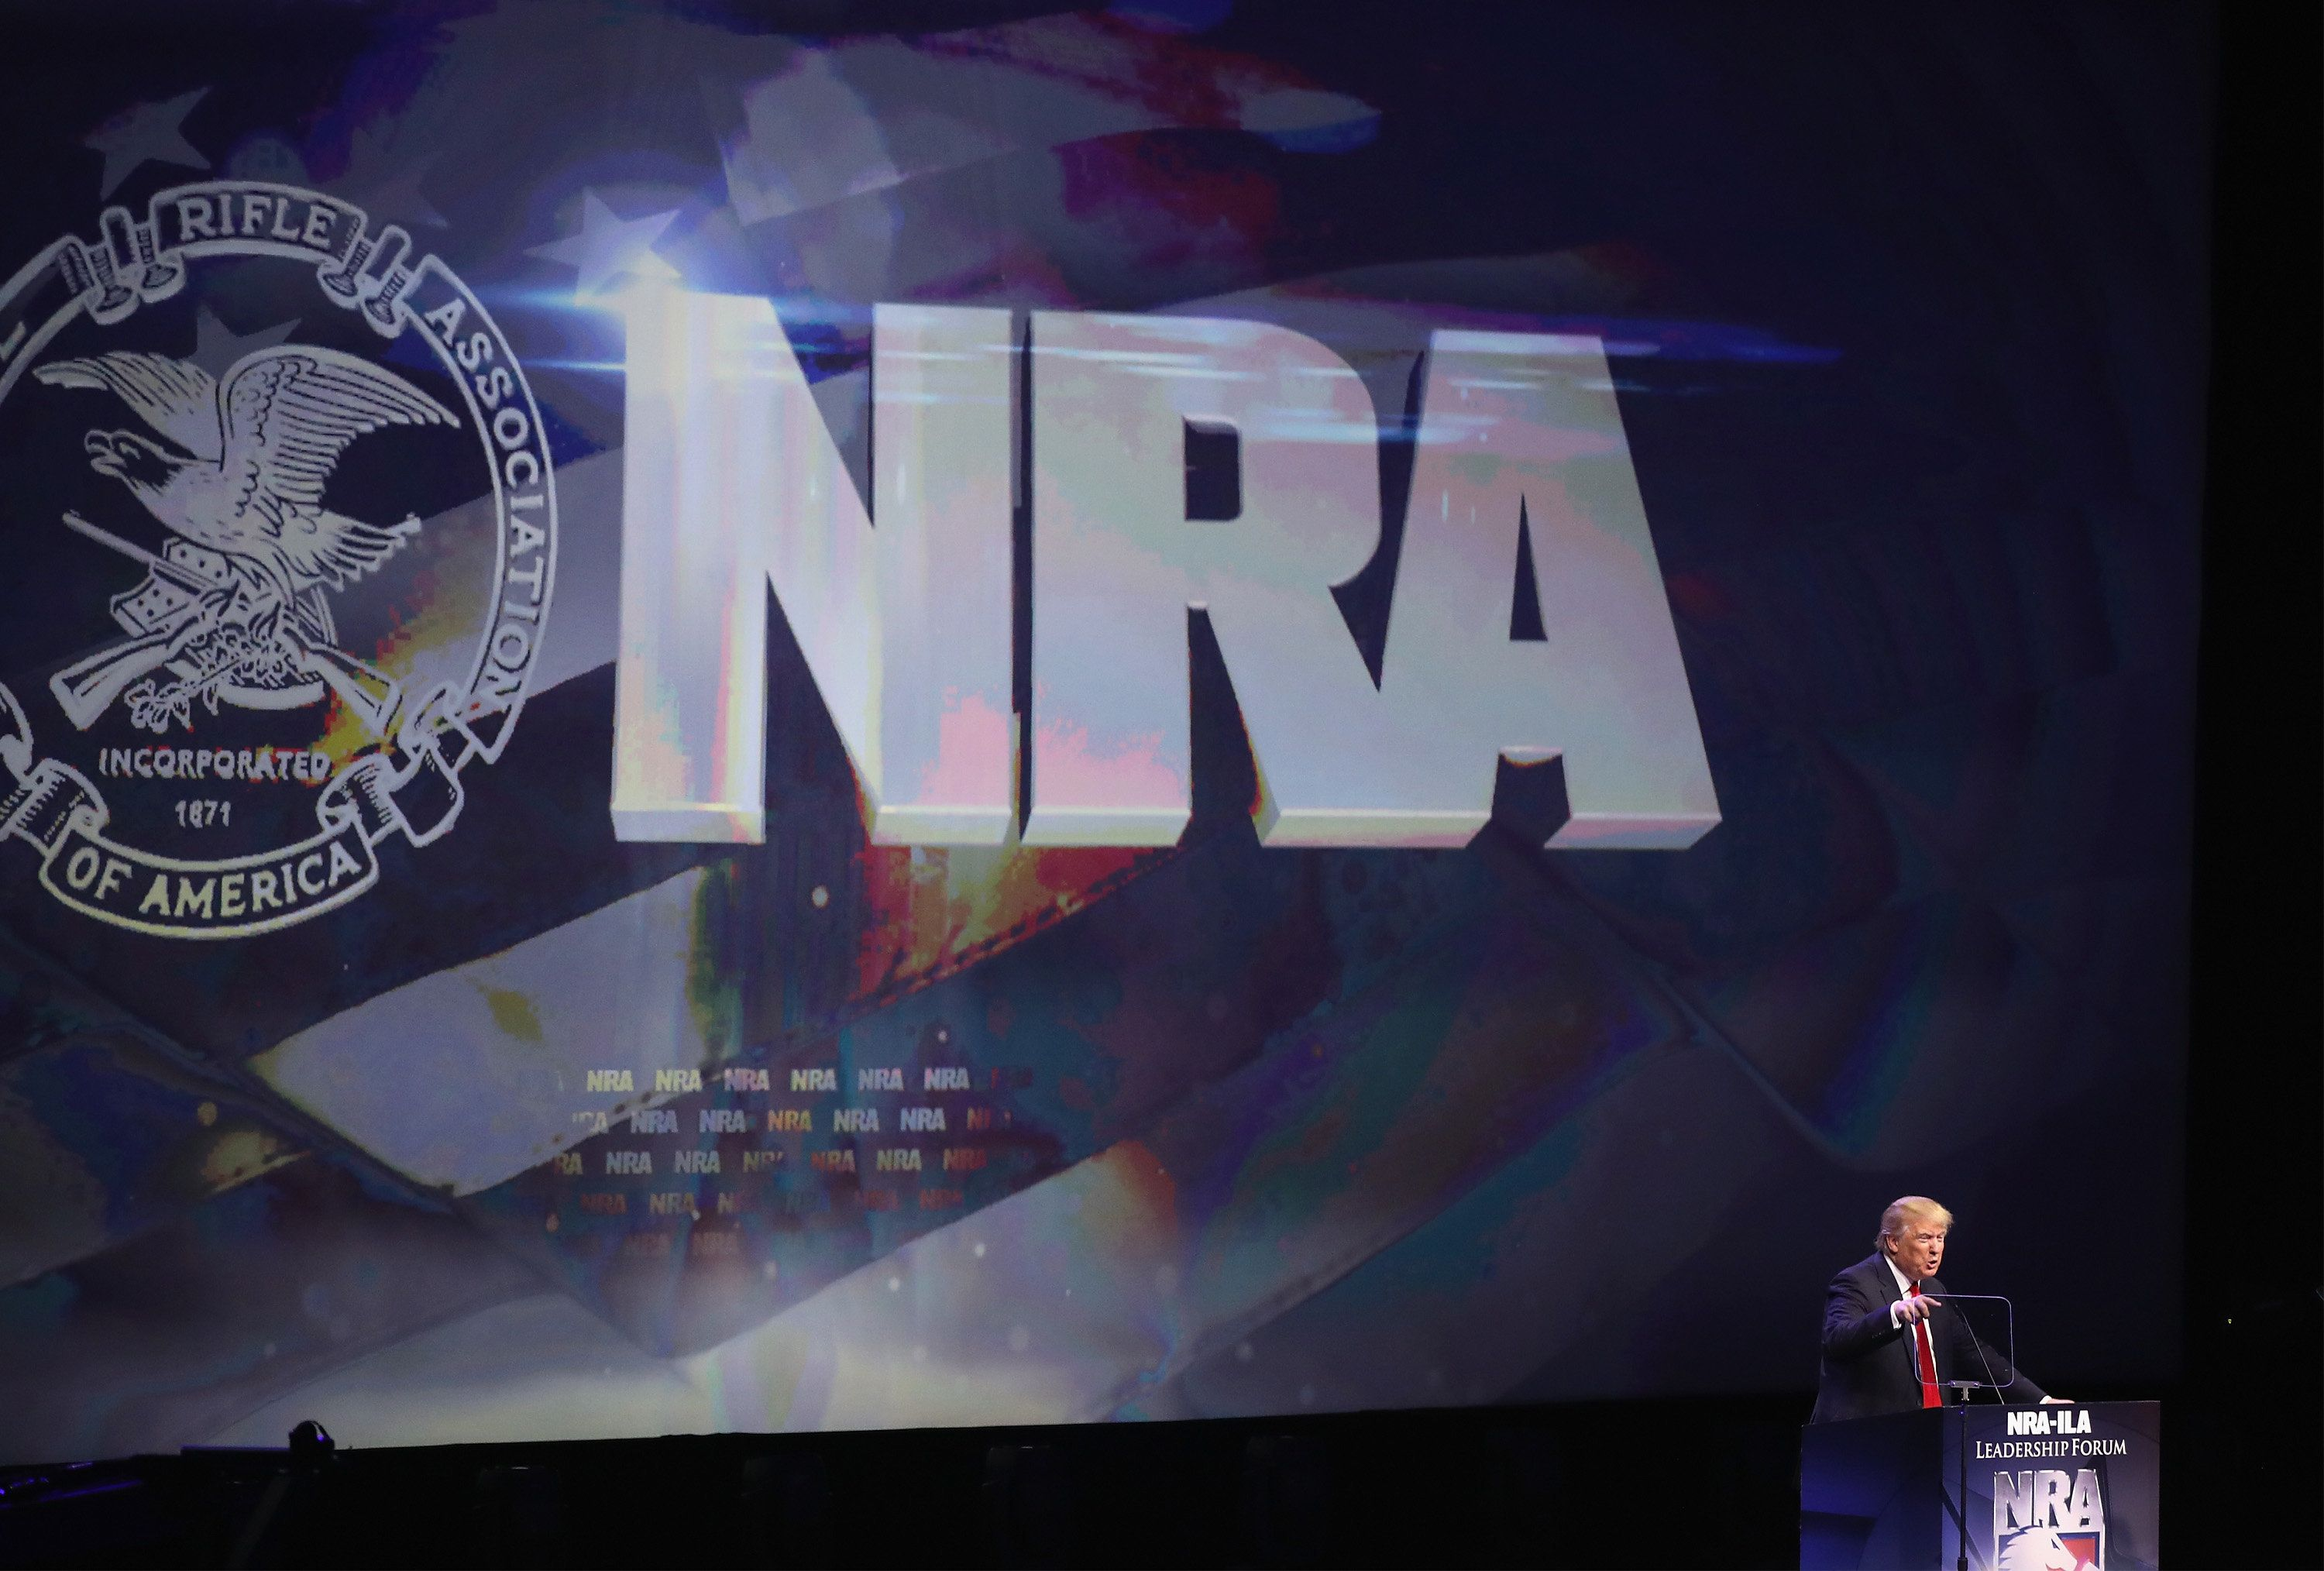 President Trump Promised to Protect Second Amendment While Speaking at NRA Convention